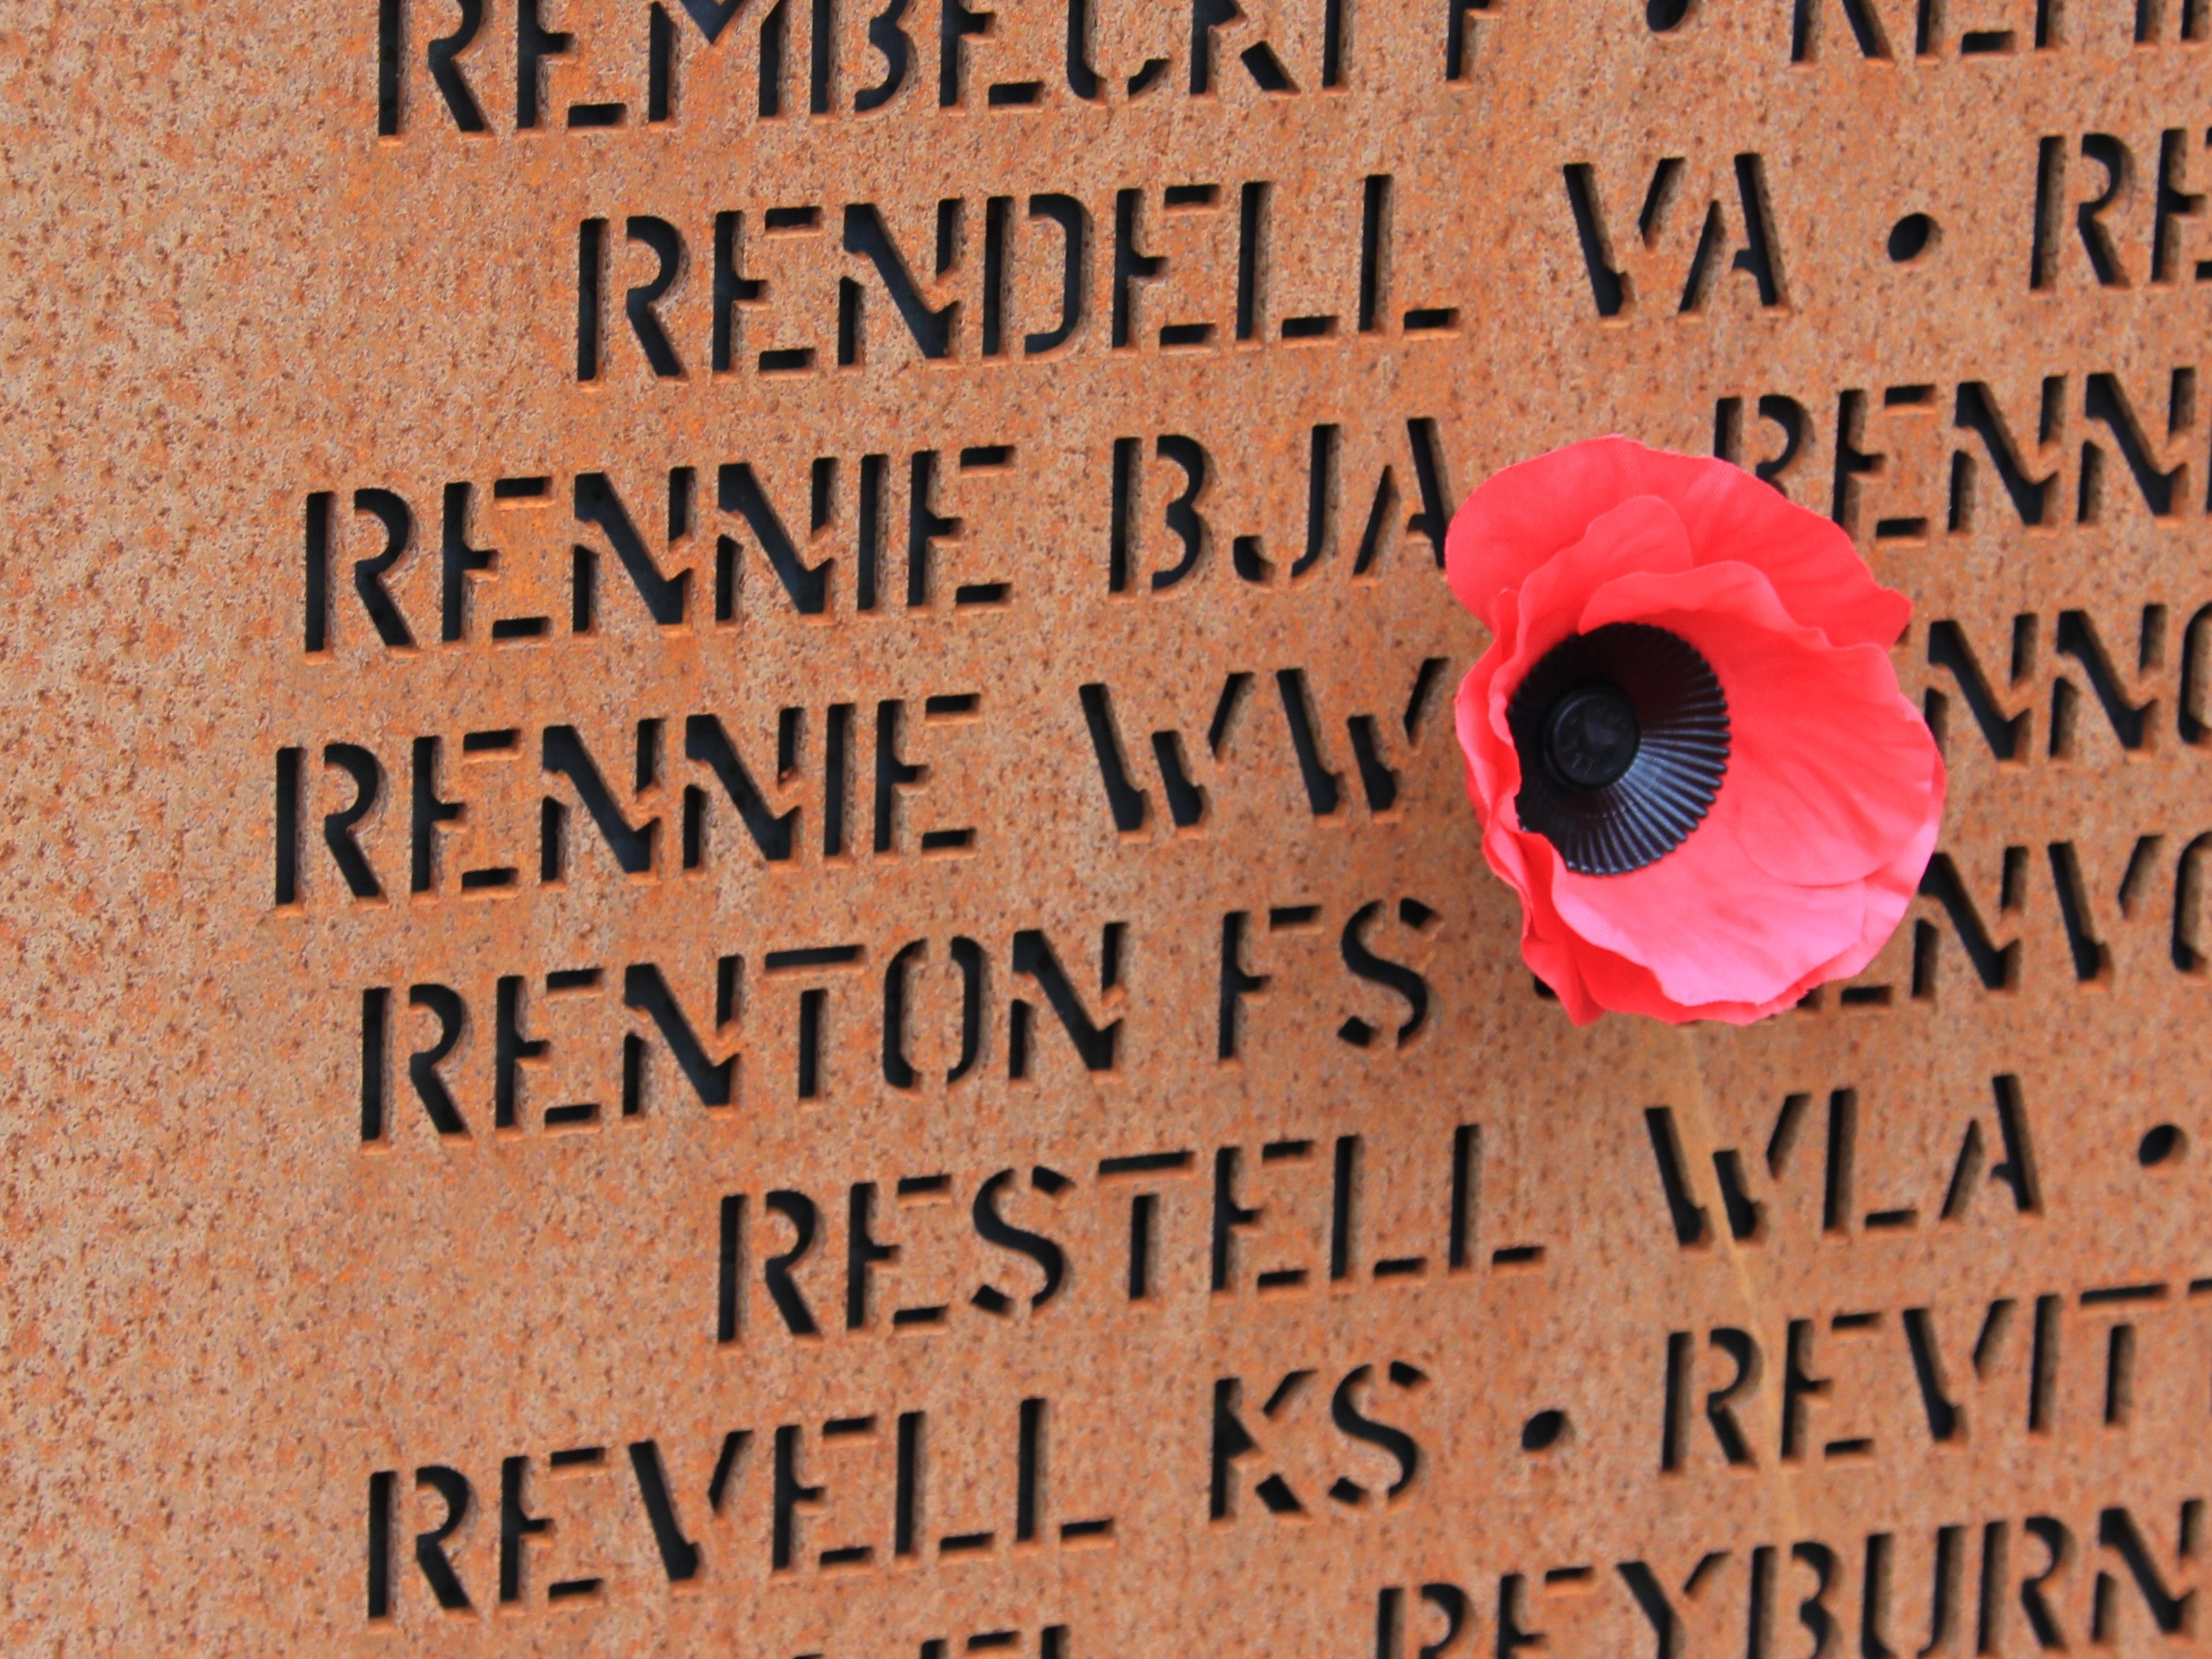 Bill Rennie remembered at the IBCC Memorial, Lincoln